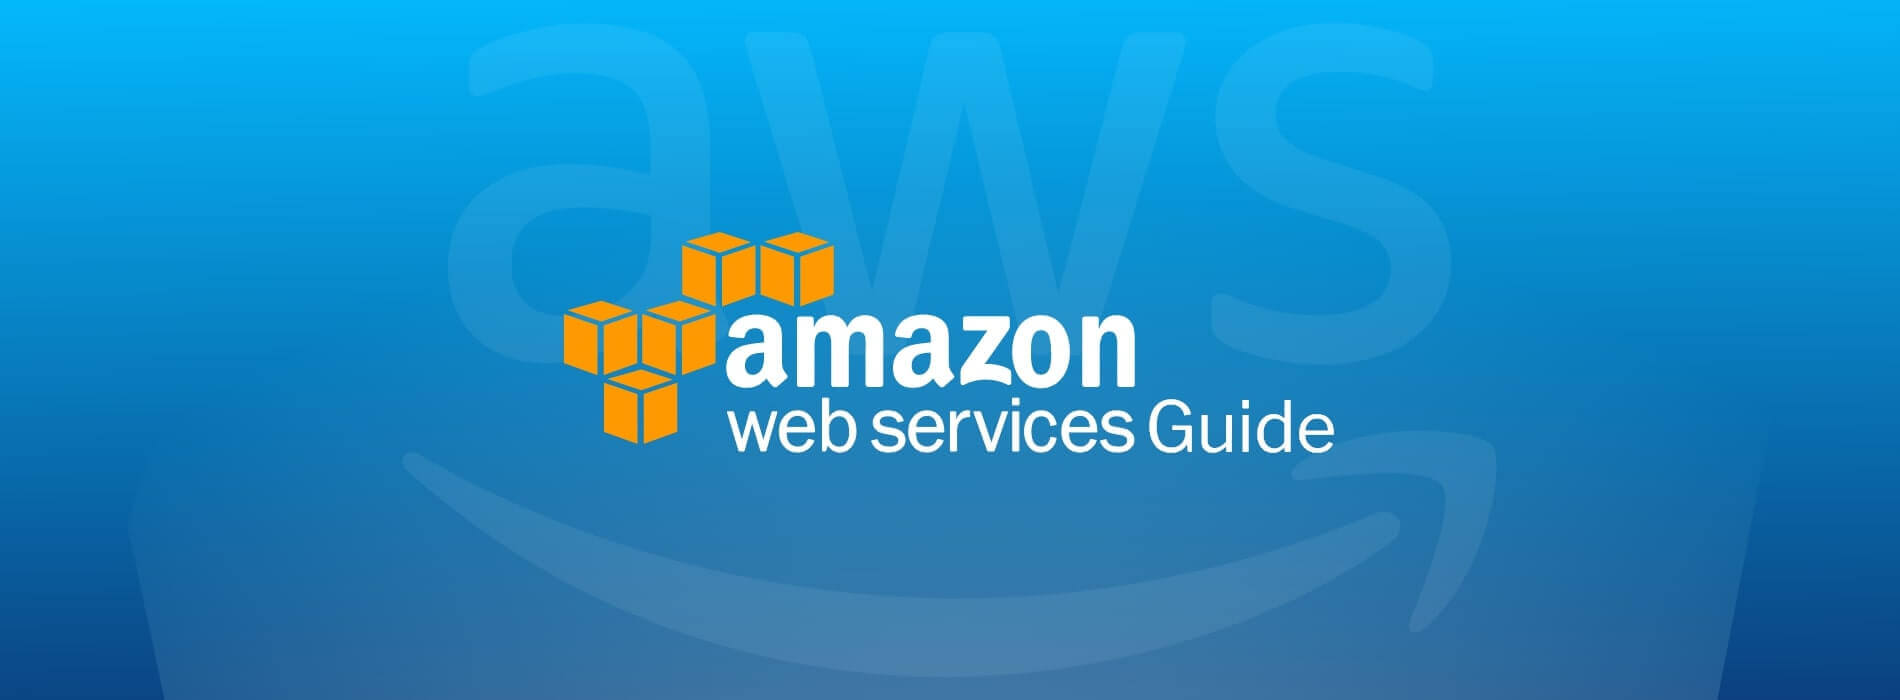 A Handy Guide to Amazon Web Services Cloud (AWS)